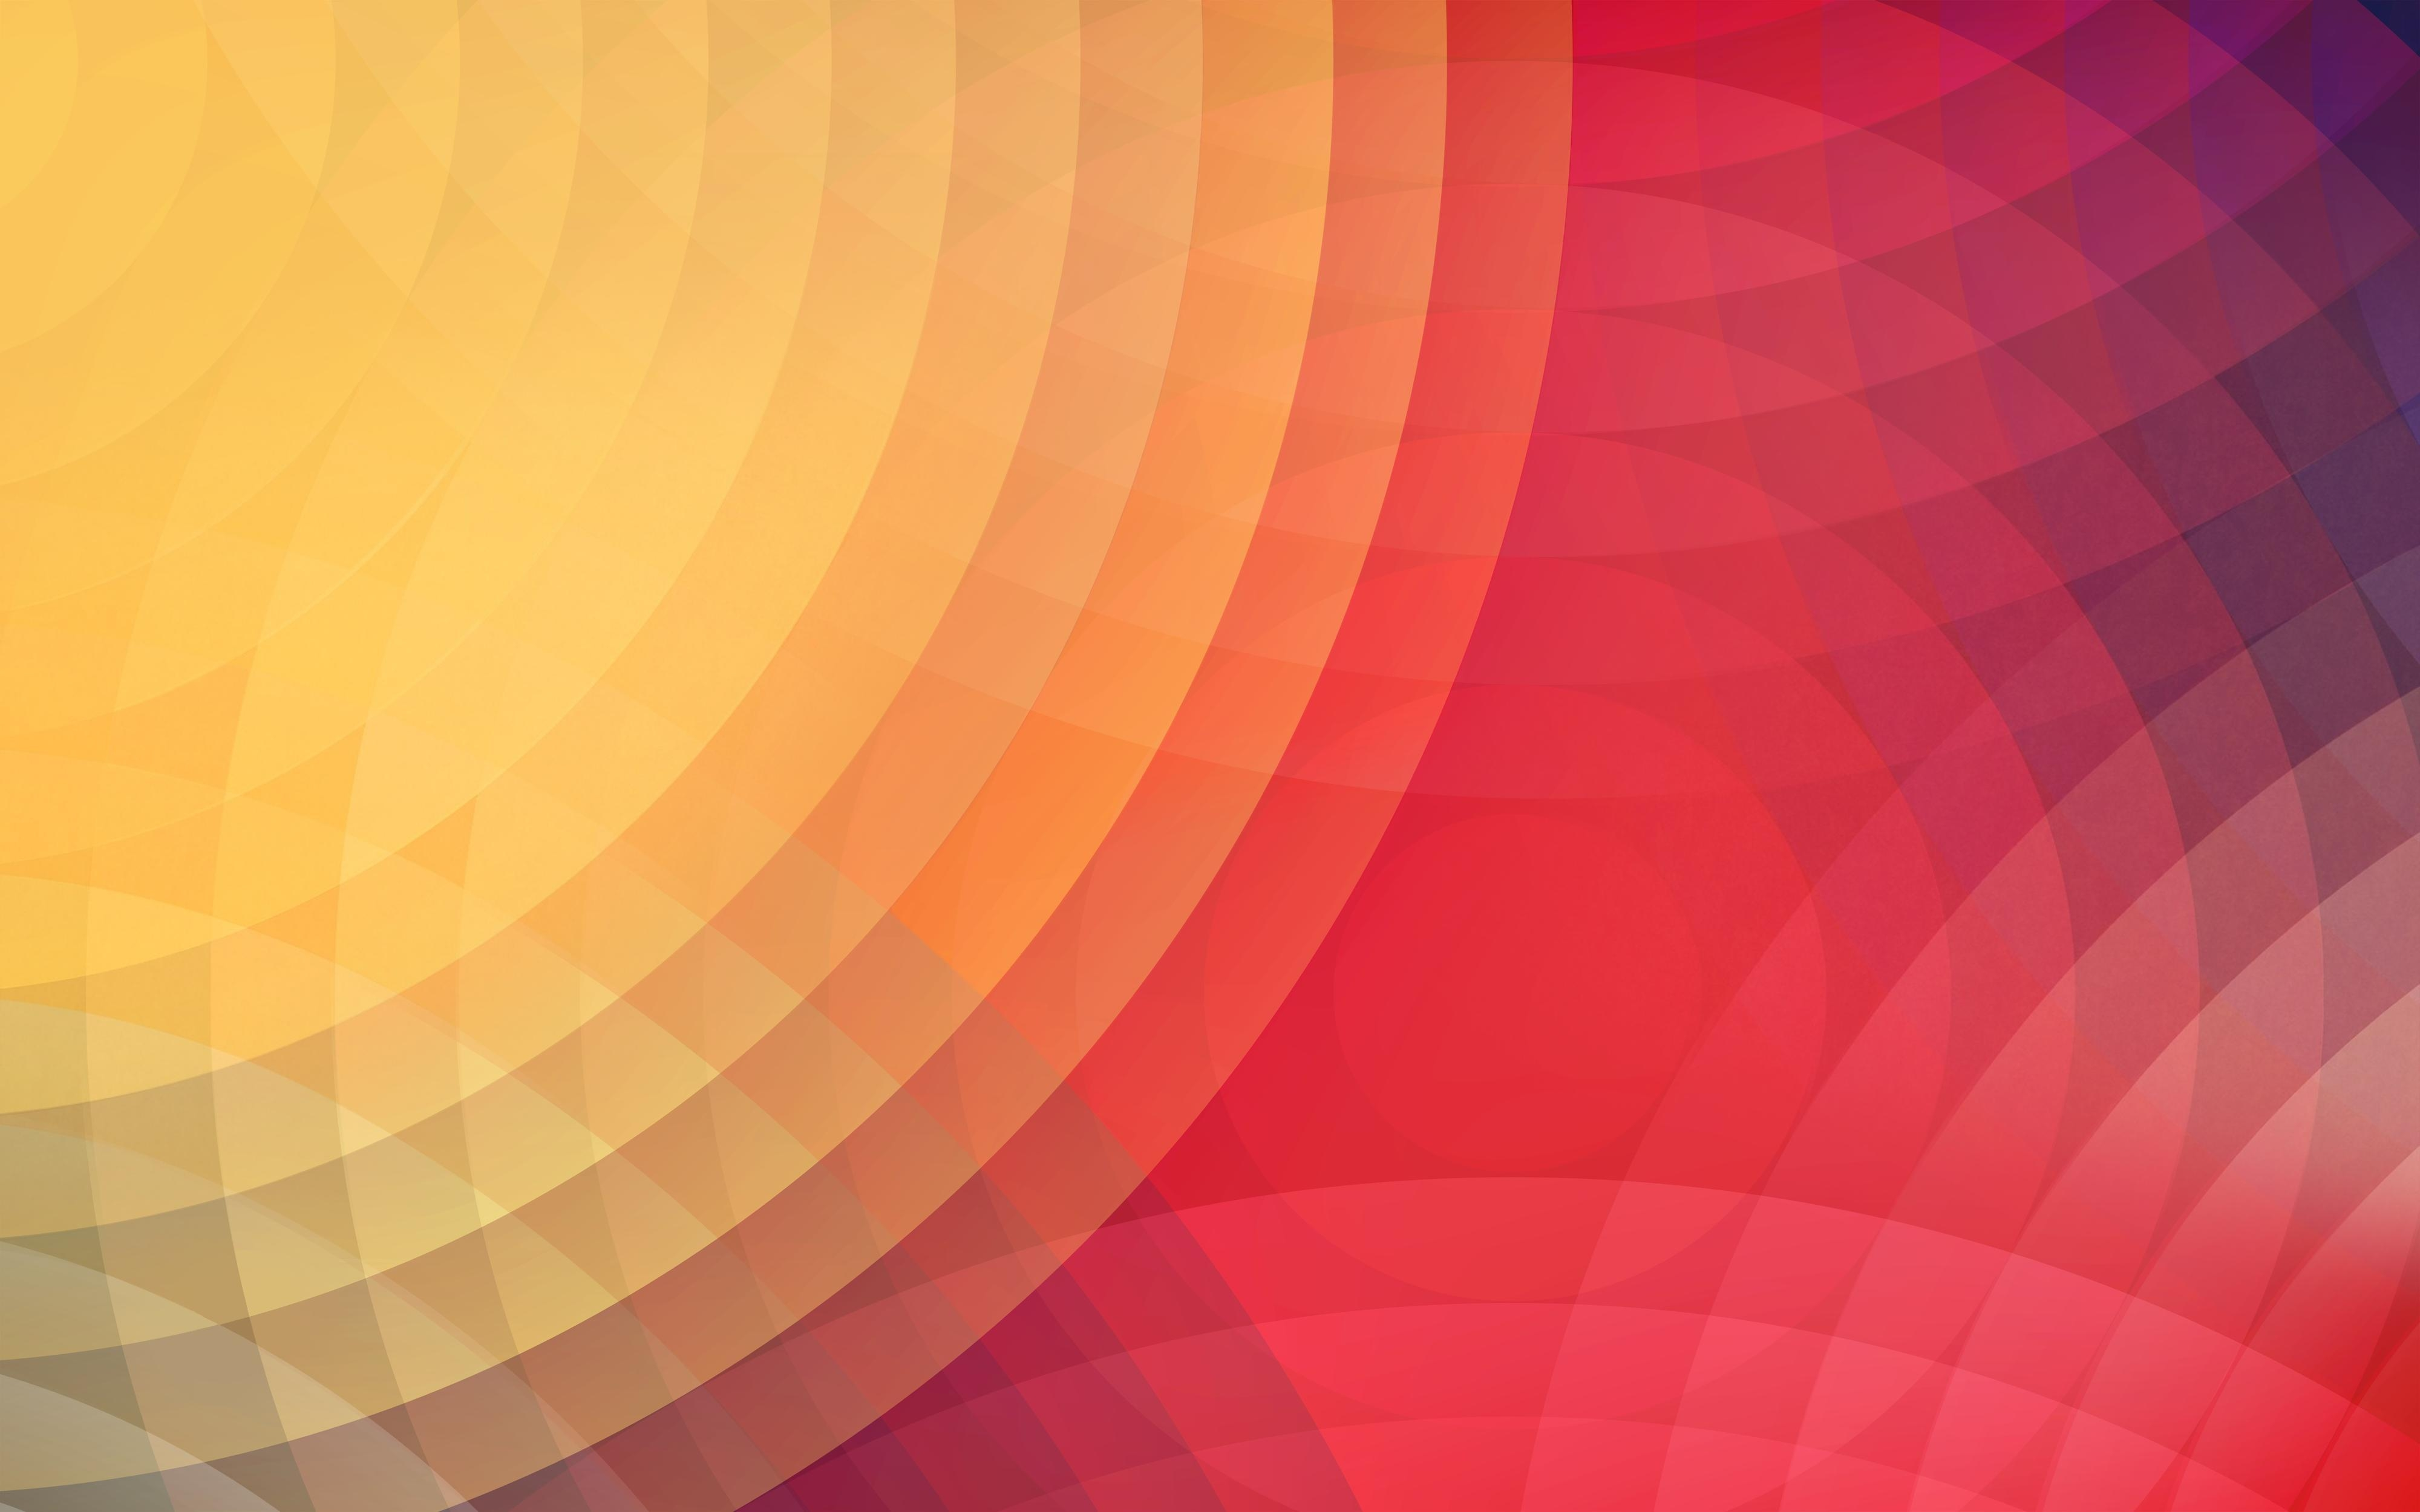 91086 download wallpaper Abstract, Form, Shine, Light, Bright screensavers and pictures for free